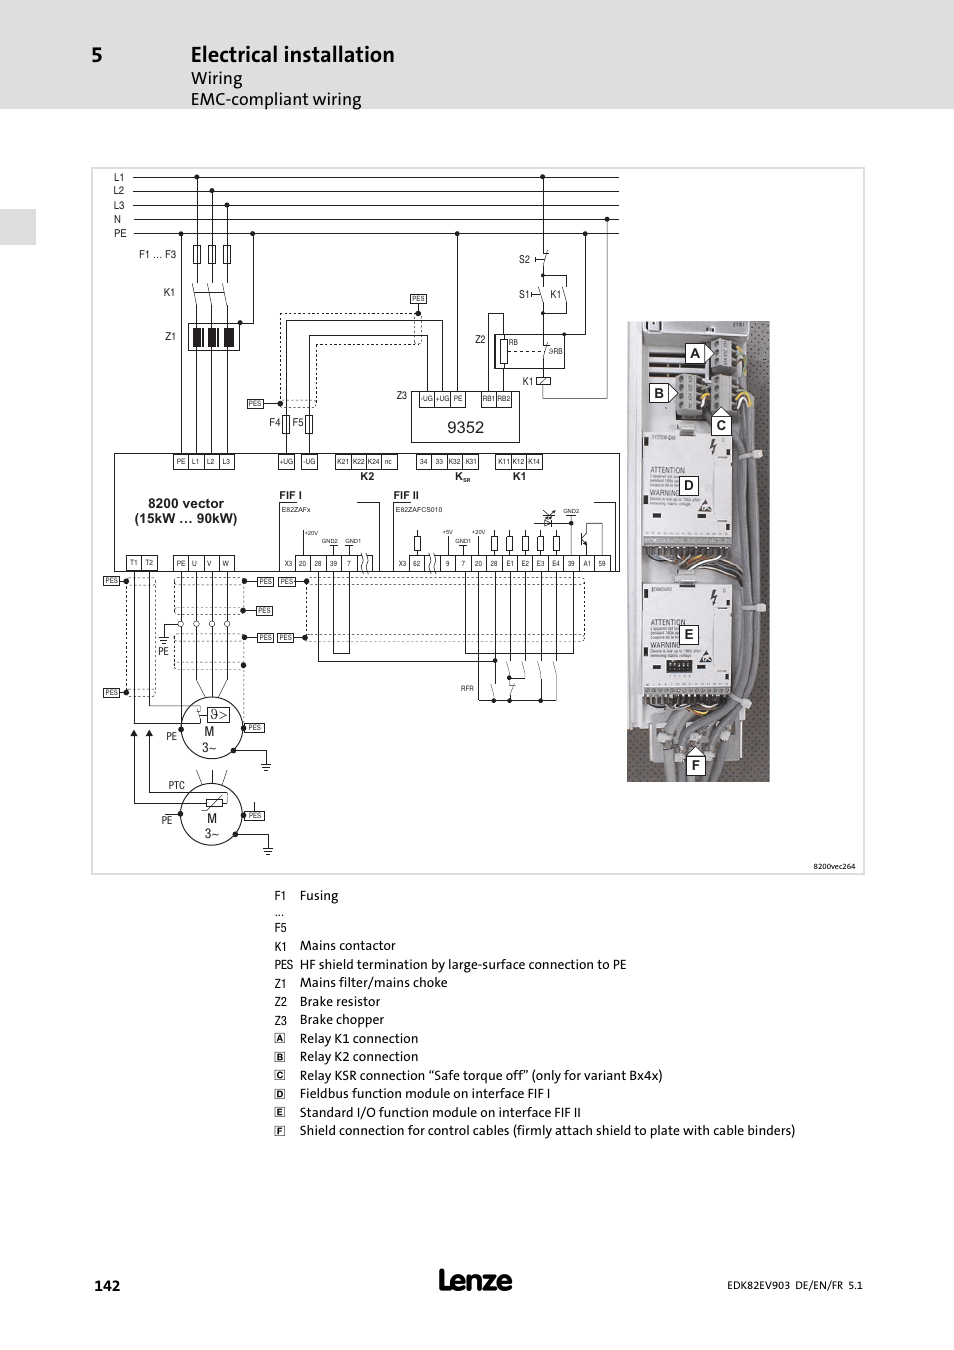 Electrical installation, Wiring emc−compliant wiring